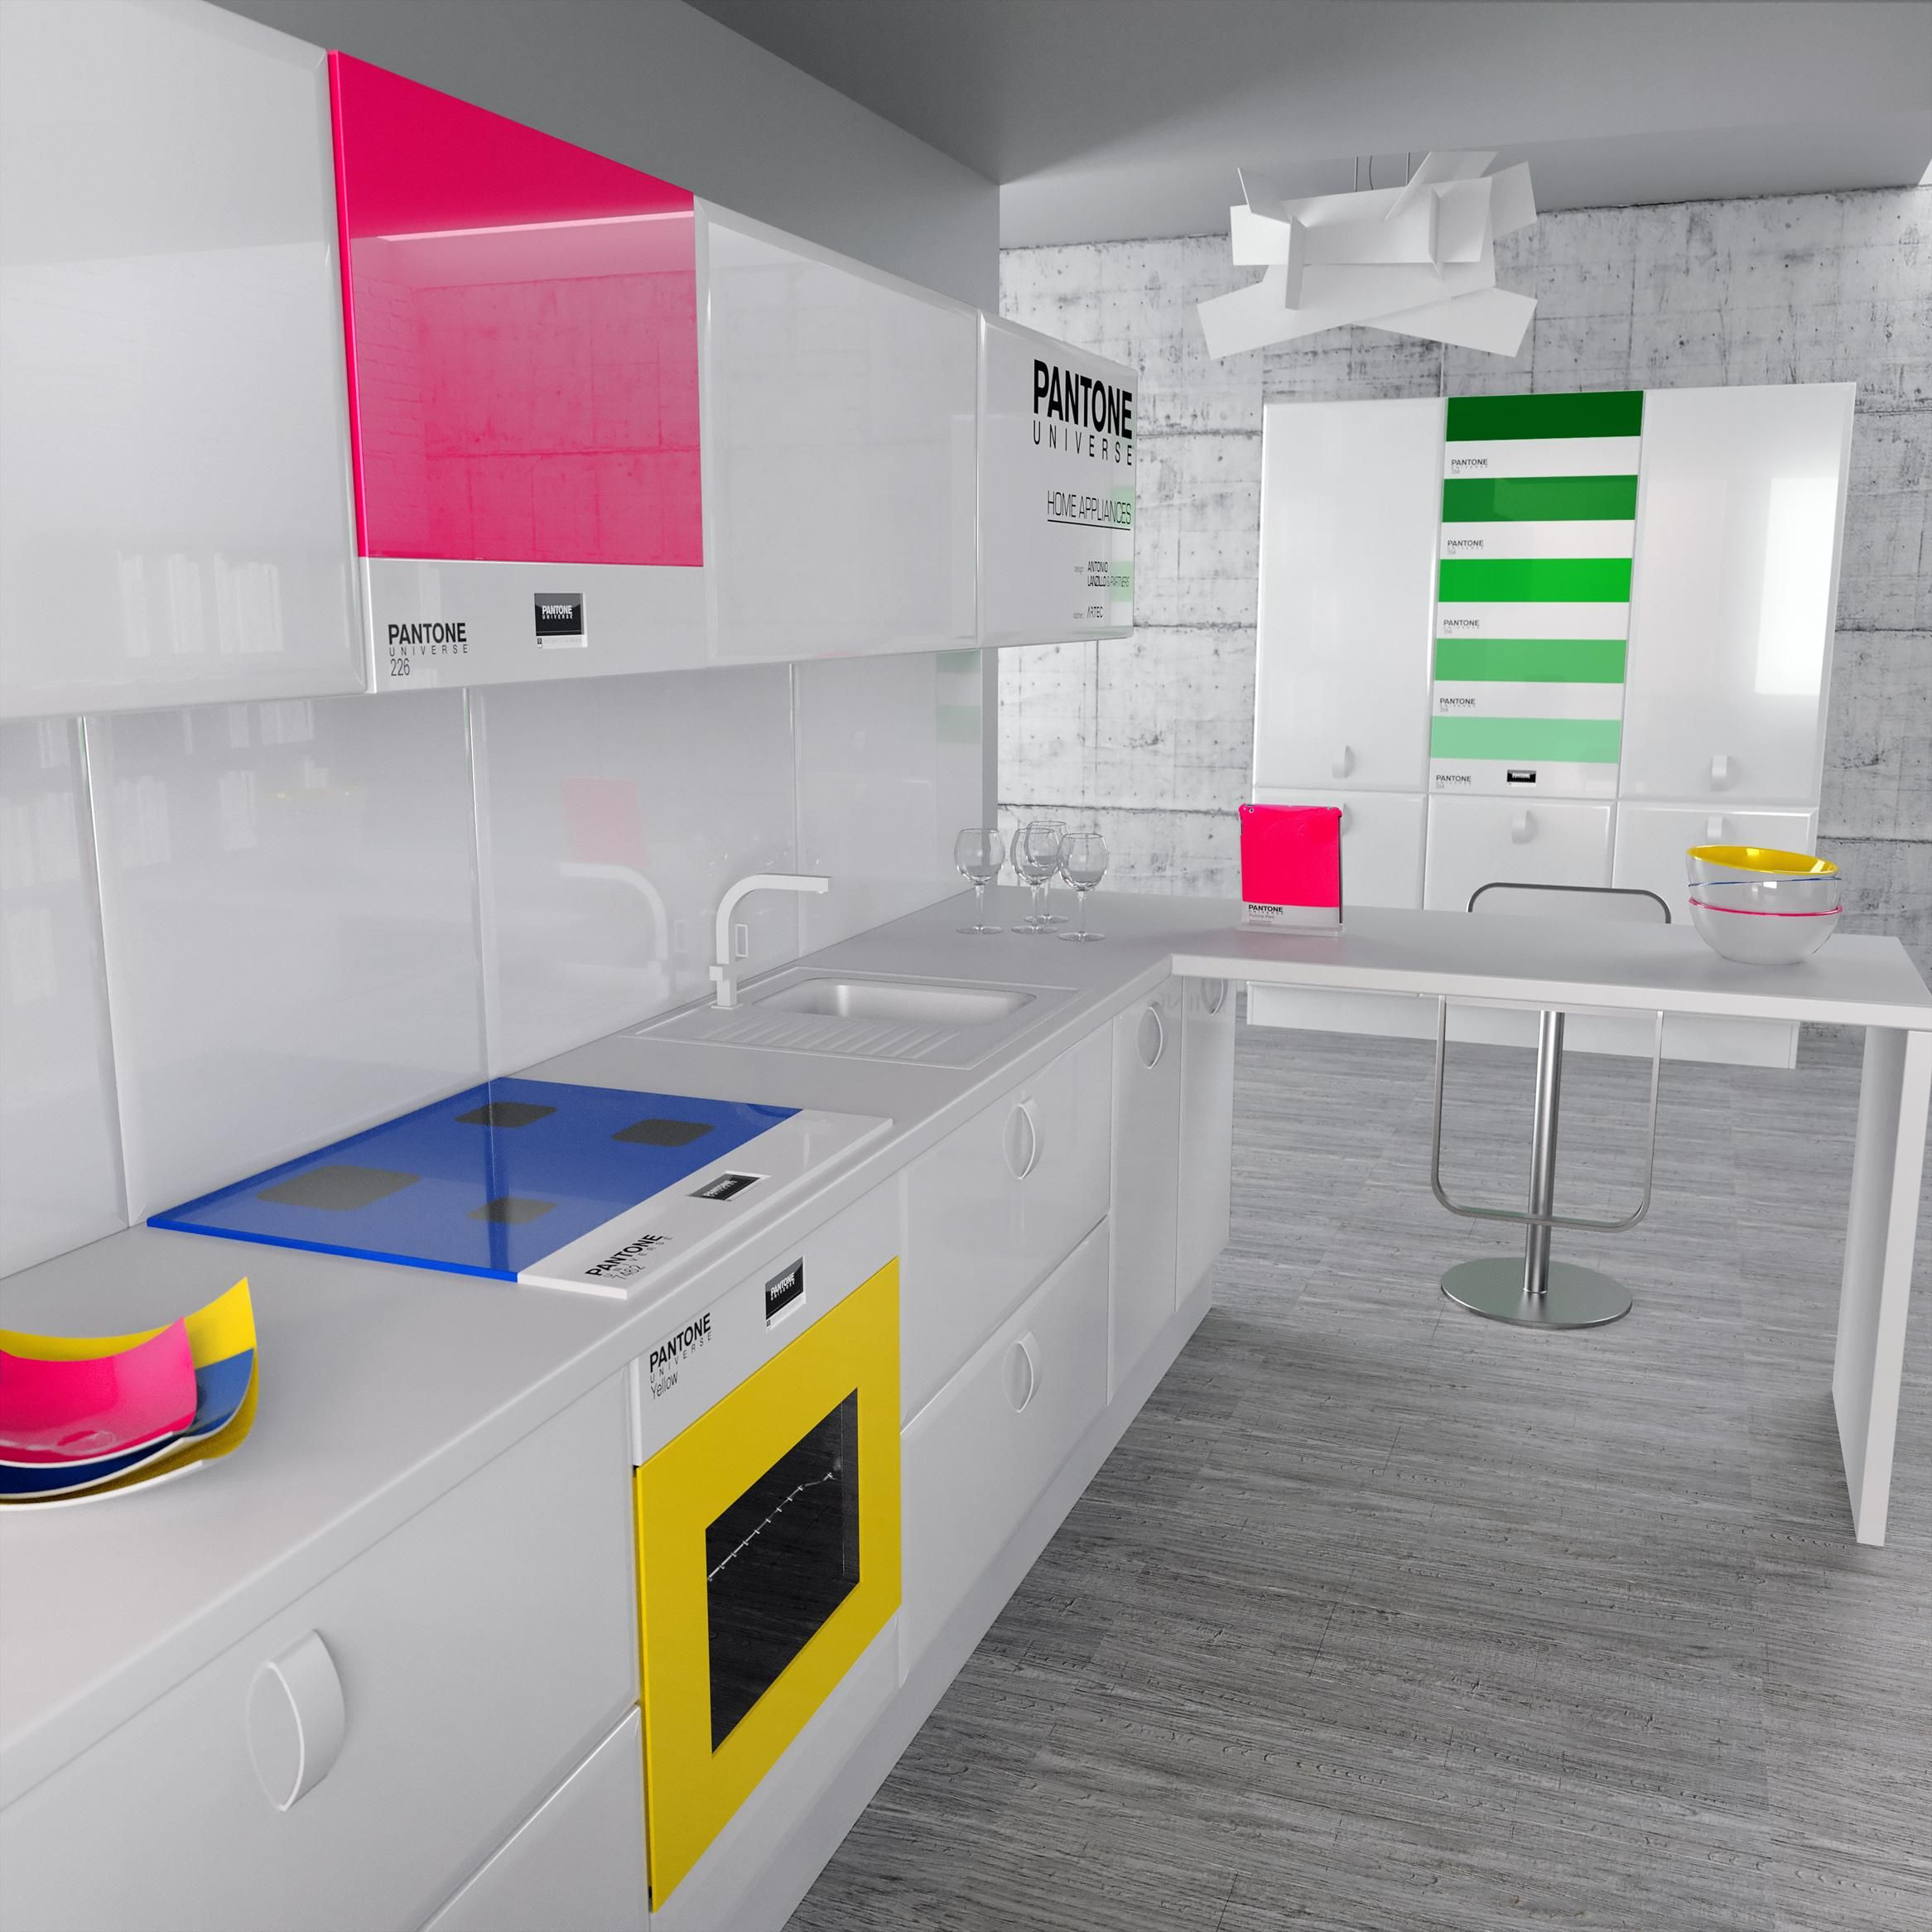 pantone kitchen fuorisalone 2012 milano italy interior world